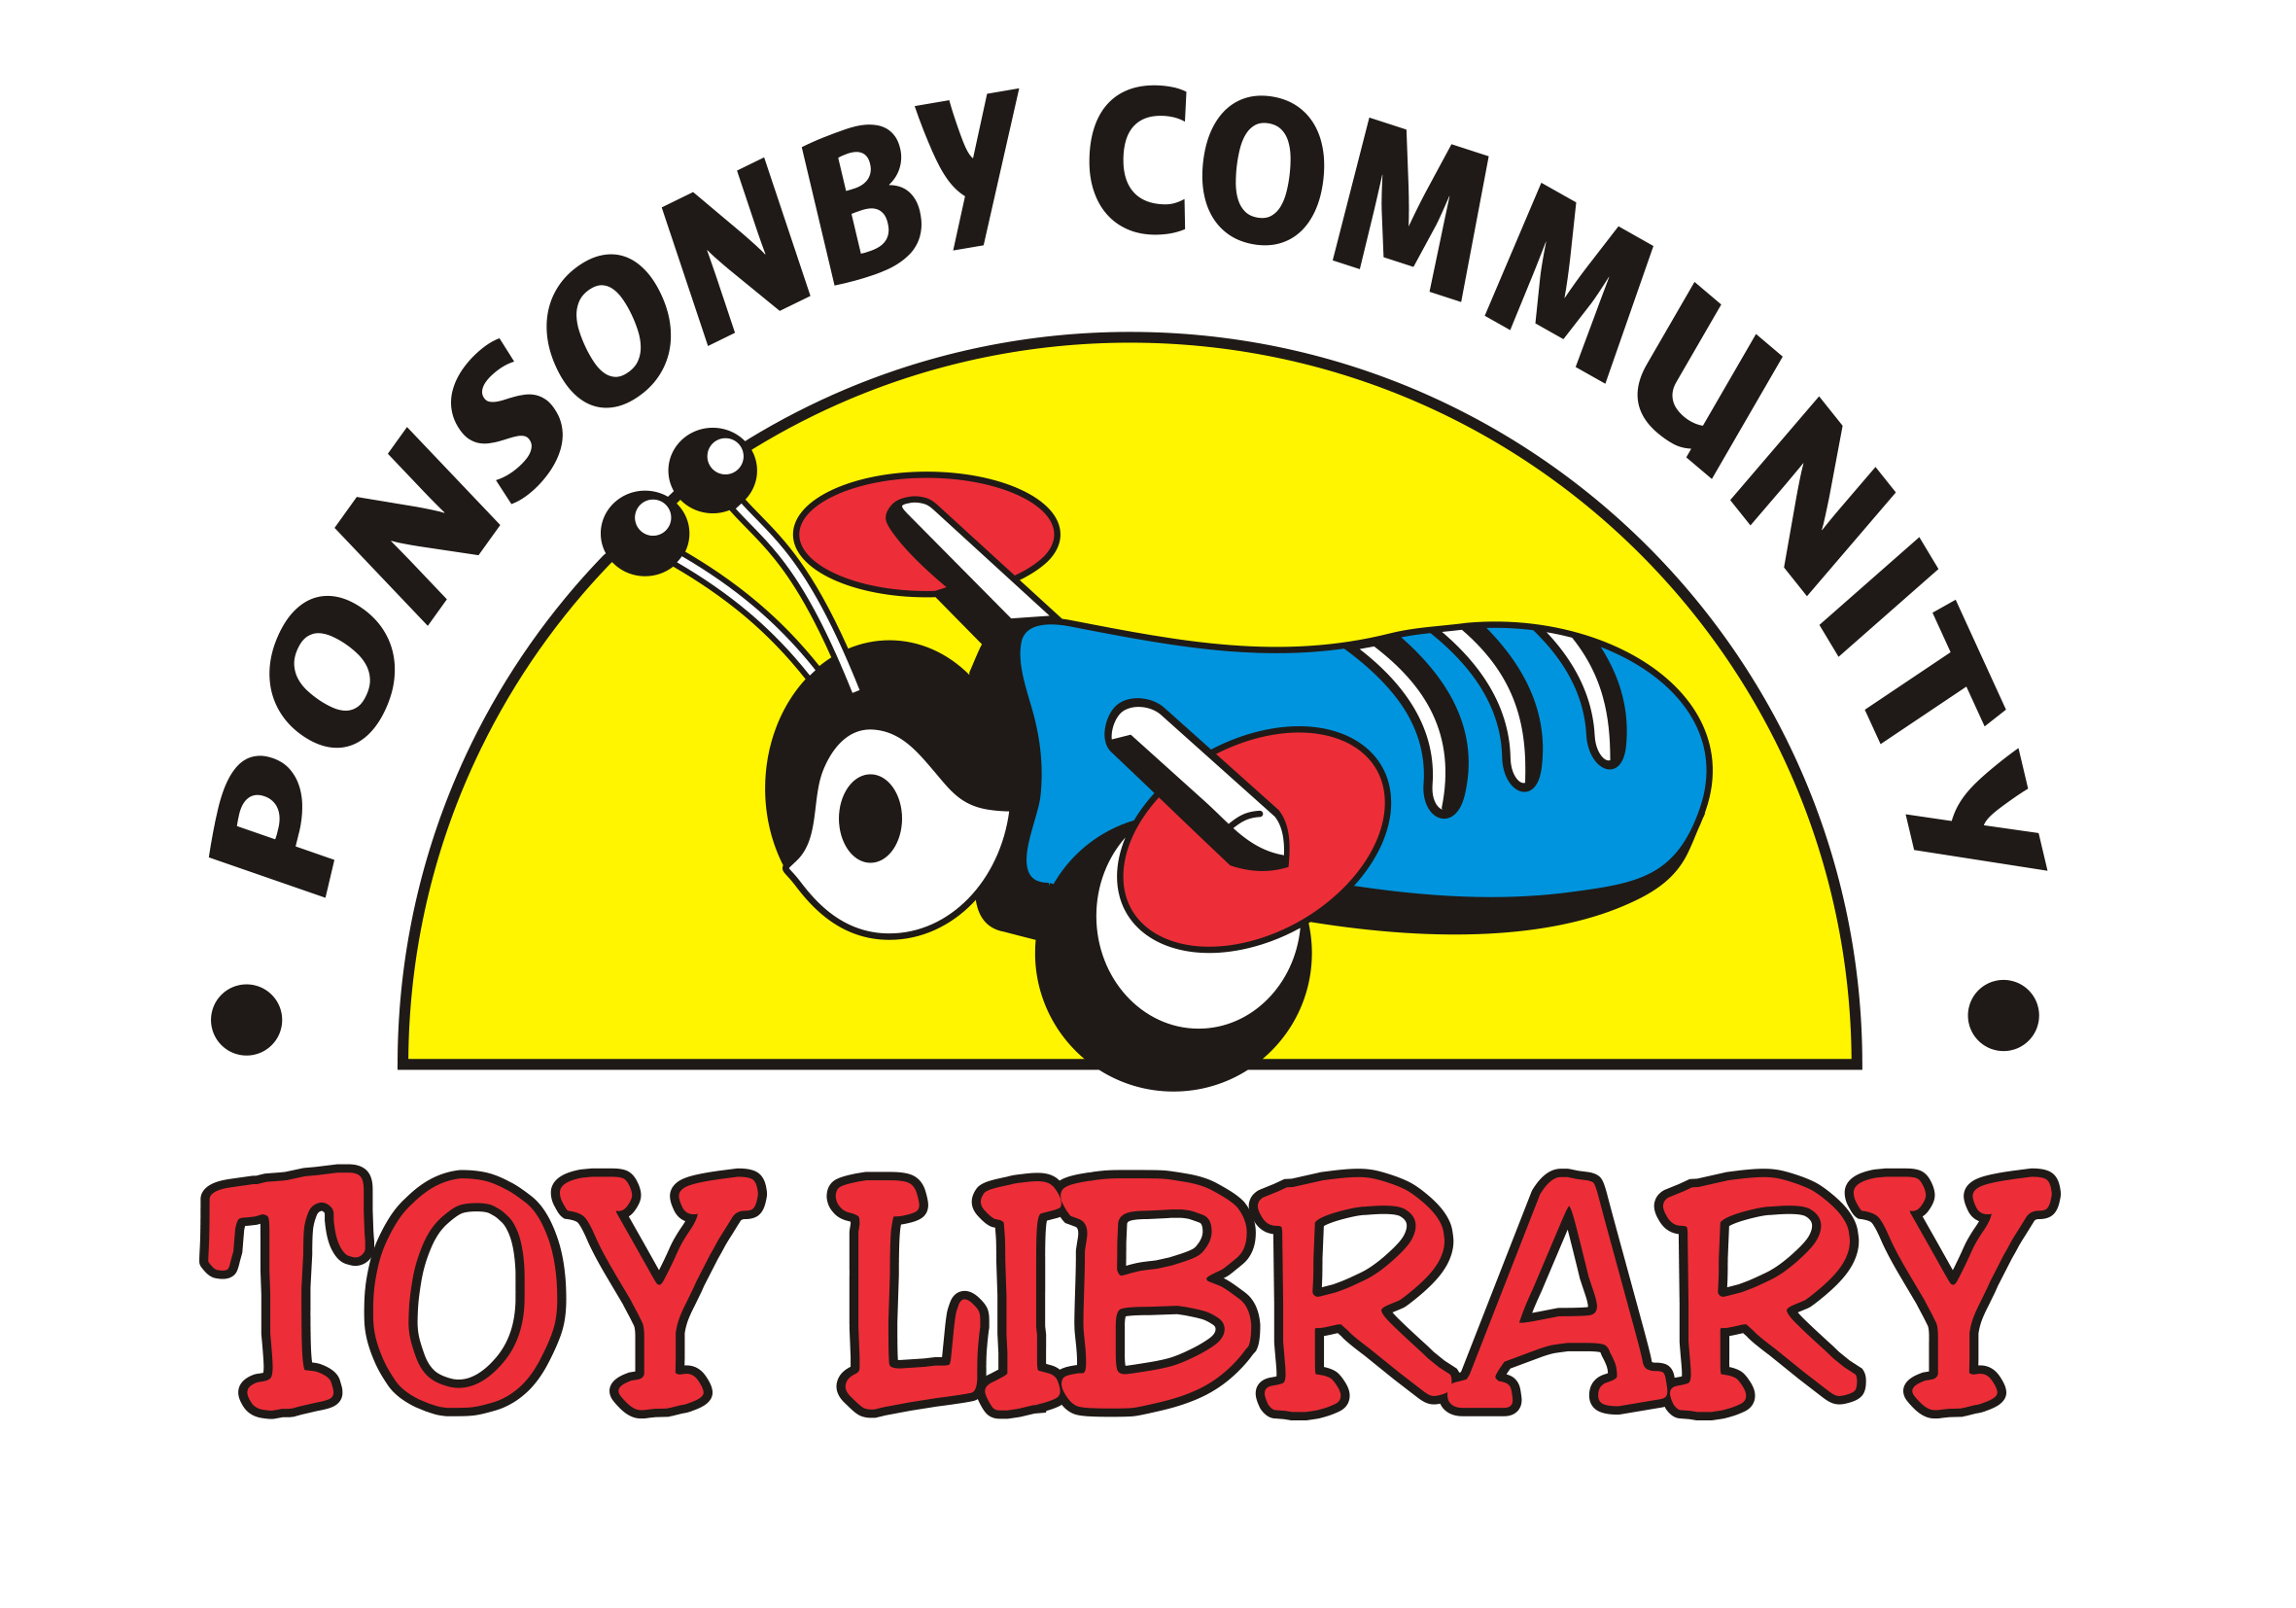 Ponsonby Community Toy Library